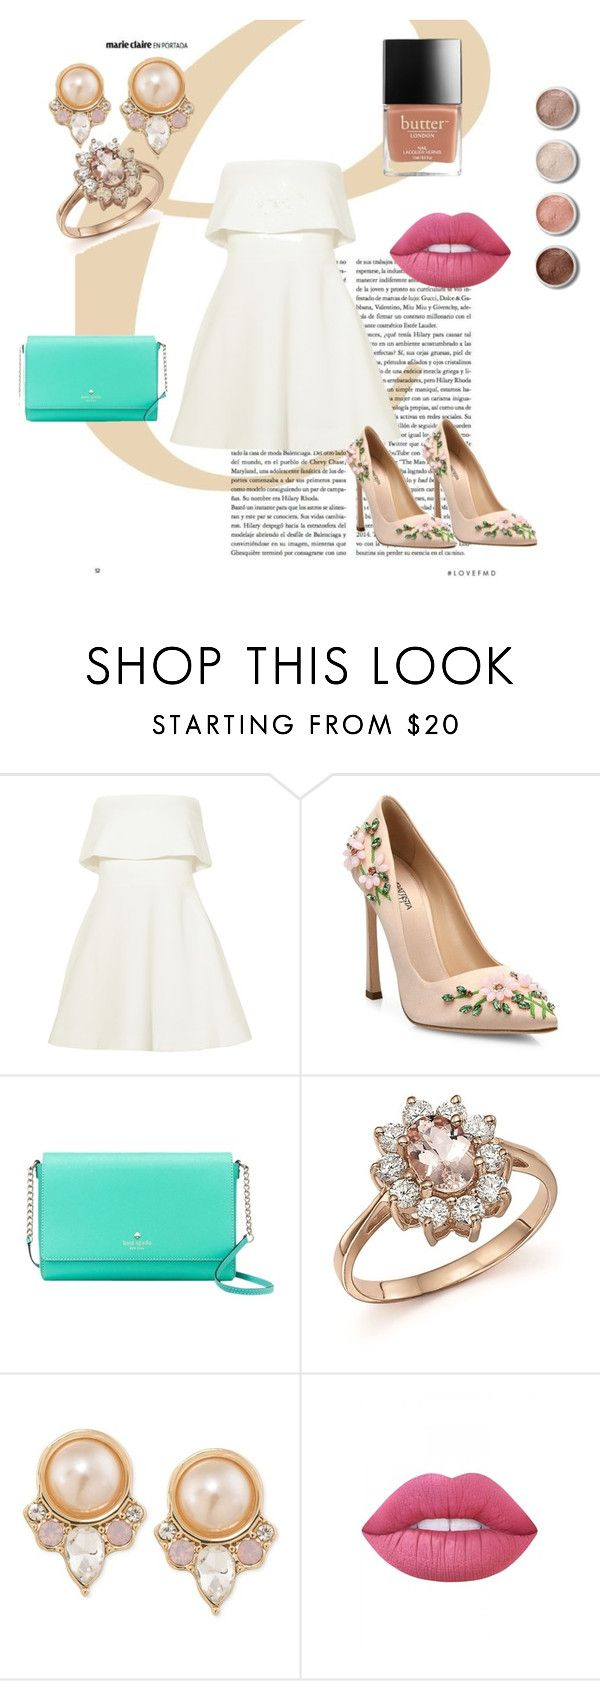 """""""just classic"""" by valentinacabarcasgs-1 on Polyvore featuring moda, Elizabeth and James, Giambattista Valli, Kate Spade, Bloomingdale's, Carolee, Lime Crime y Terre Mère"""